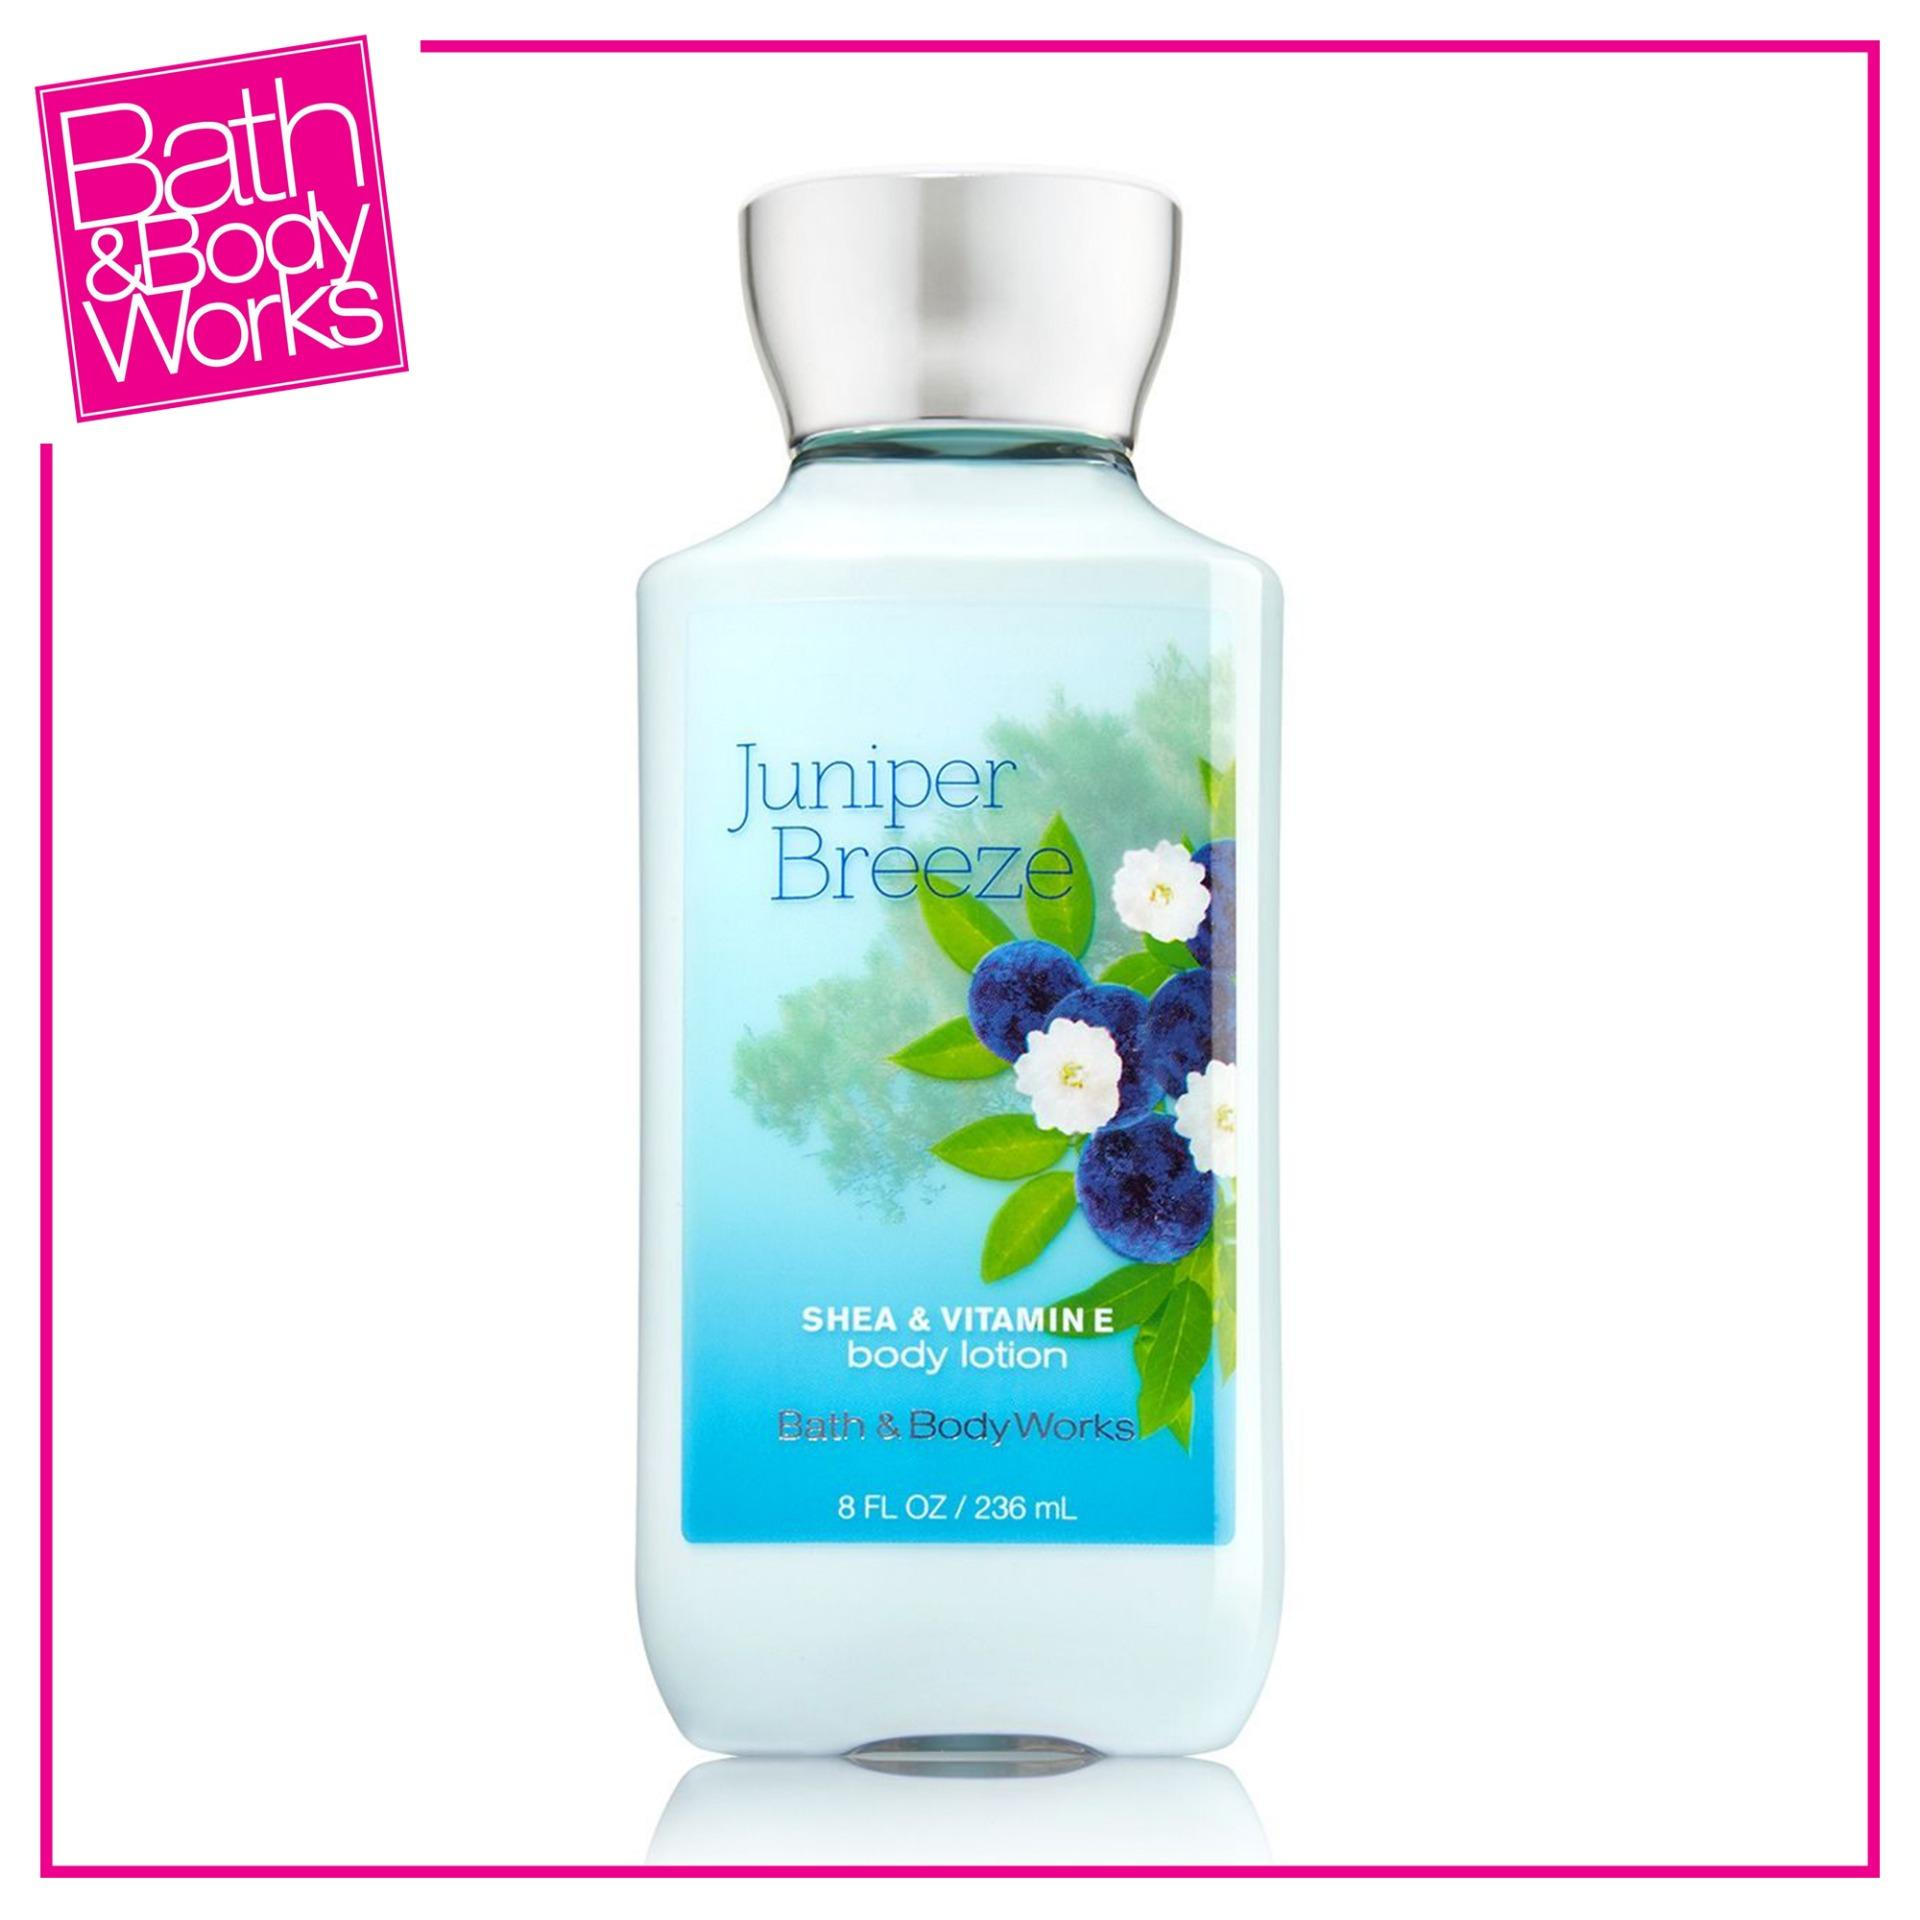 Bath and Body Works Juniper Breeze Body Lotion 236ml